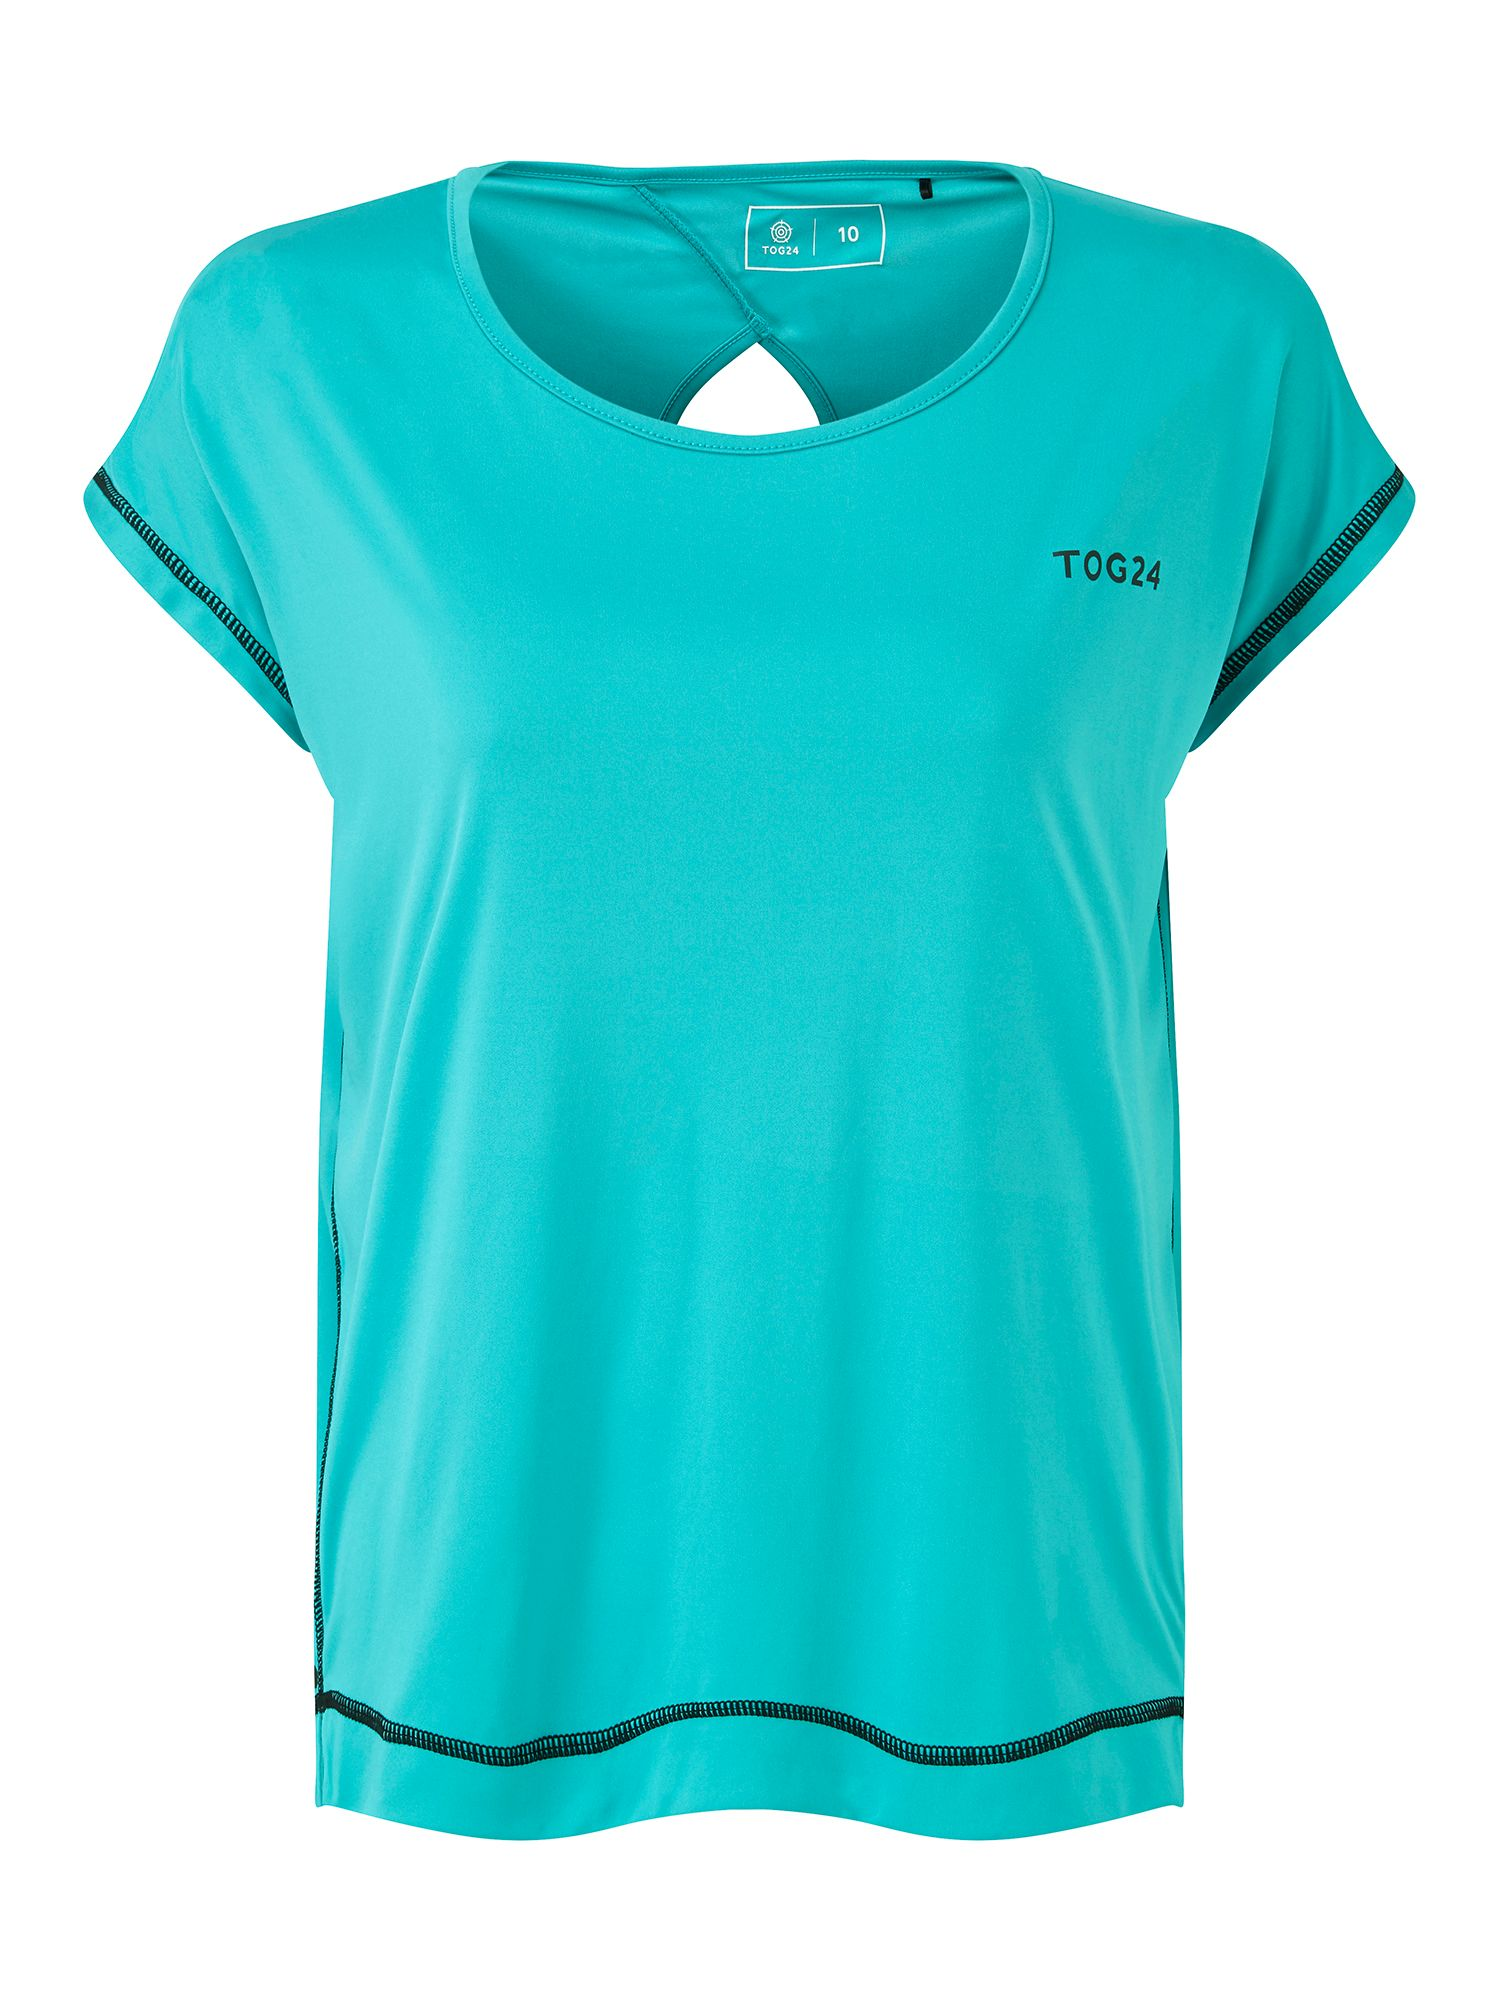 Tog 24 Courtney Womens Performance T Shirt, Turquoise